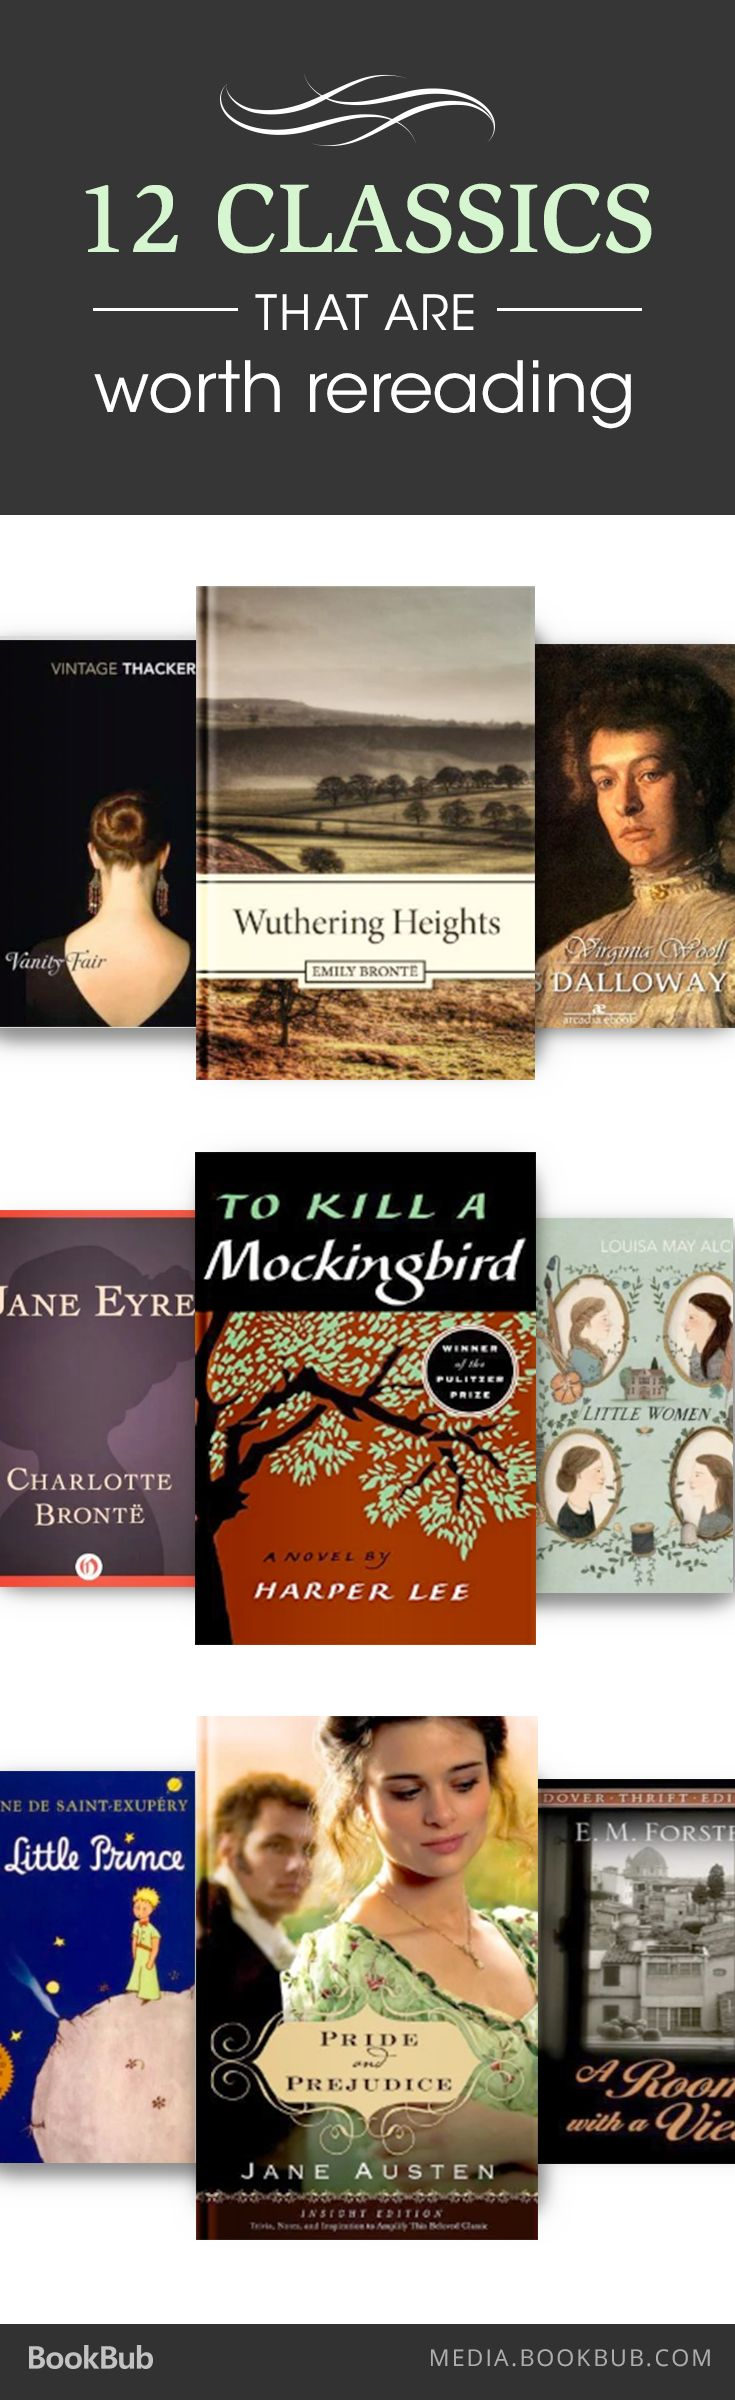 best ideas about classic books best books 12 classics that are worth rereading in 2016